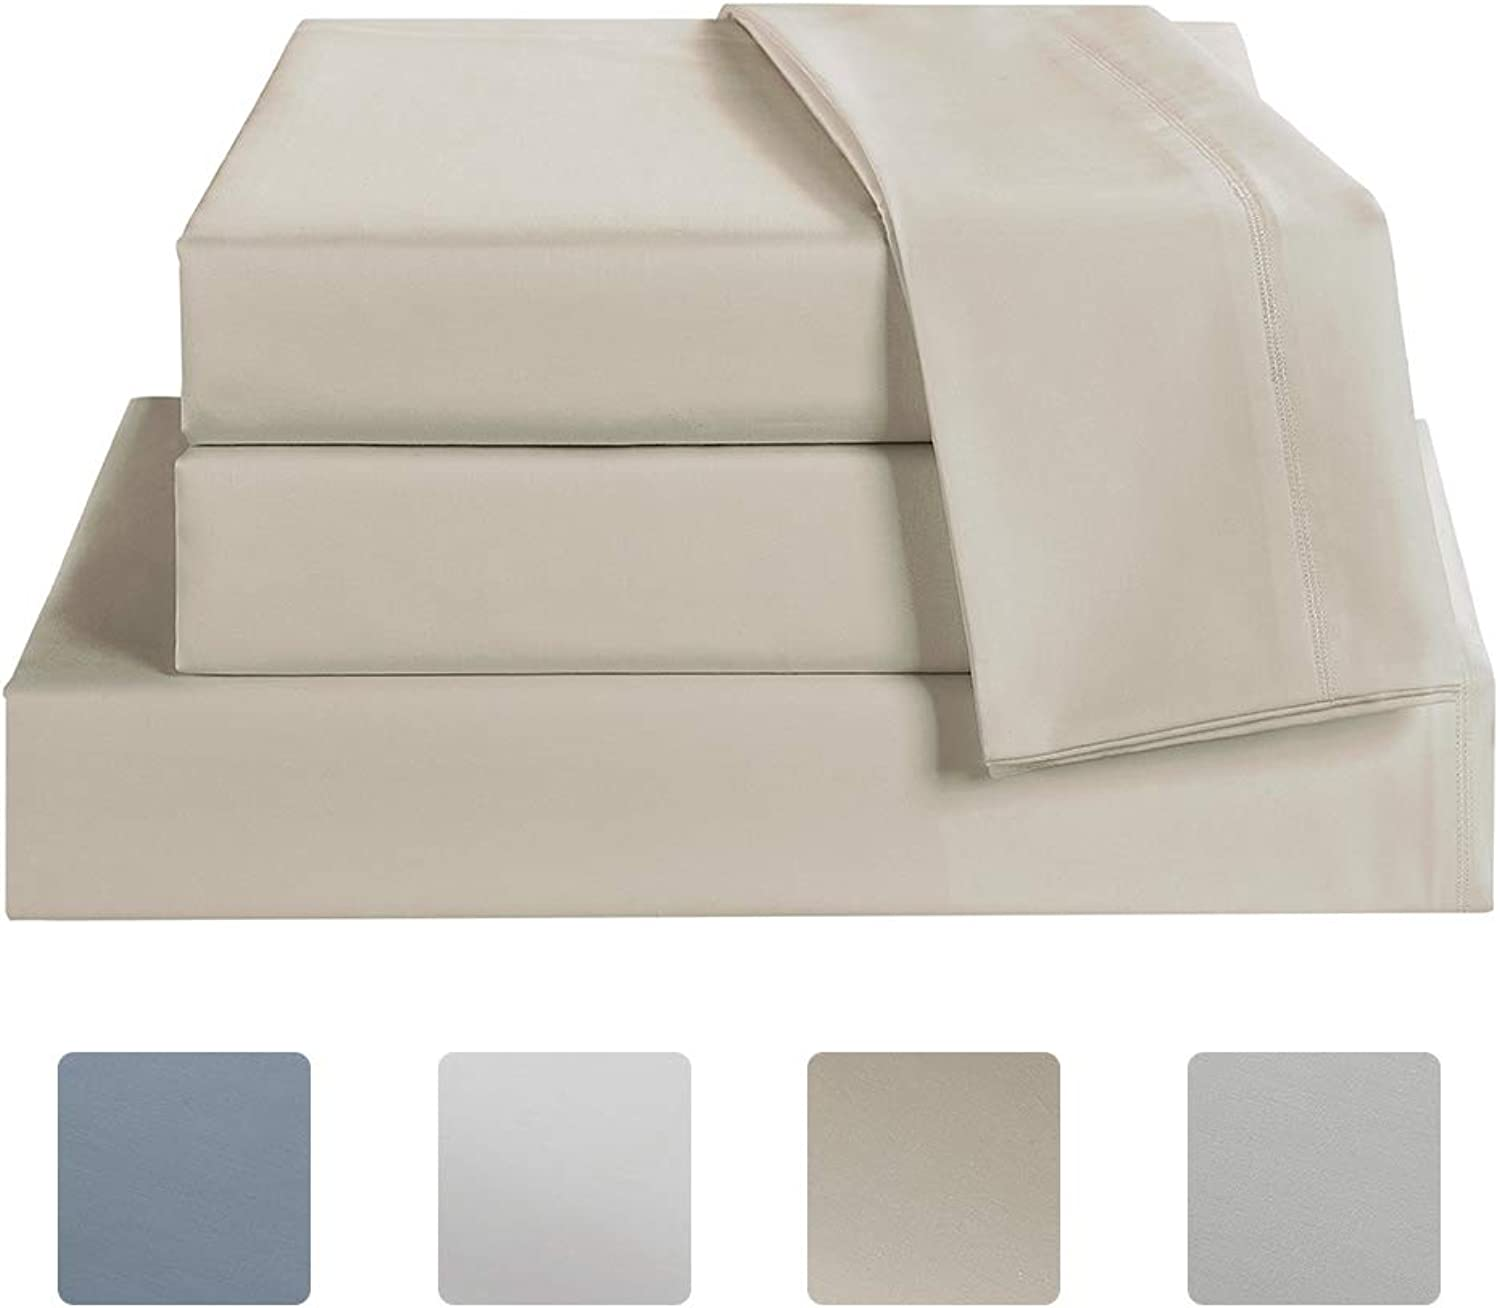 Bed Sheet Set Queen Size Sheets Set 4 Piece, 600 Thread Count 100% Long Staple Cotton Bedding Set, Sateen Weave, 18  Deep Pocket, Breathable & Fade Resistant(Queen, Linen)